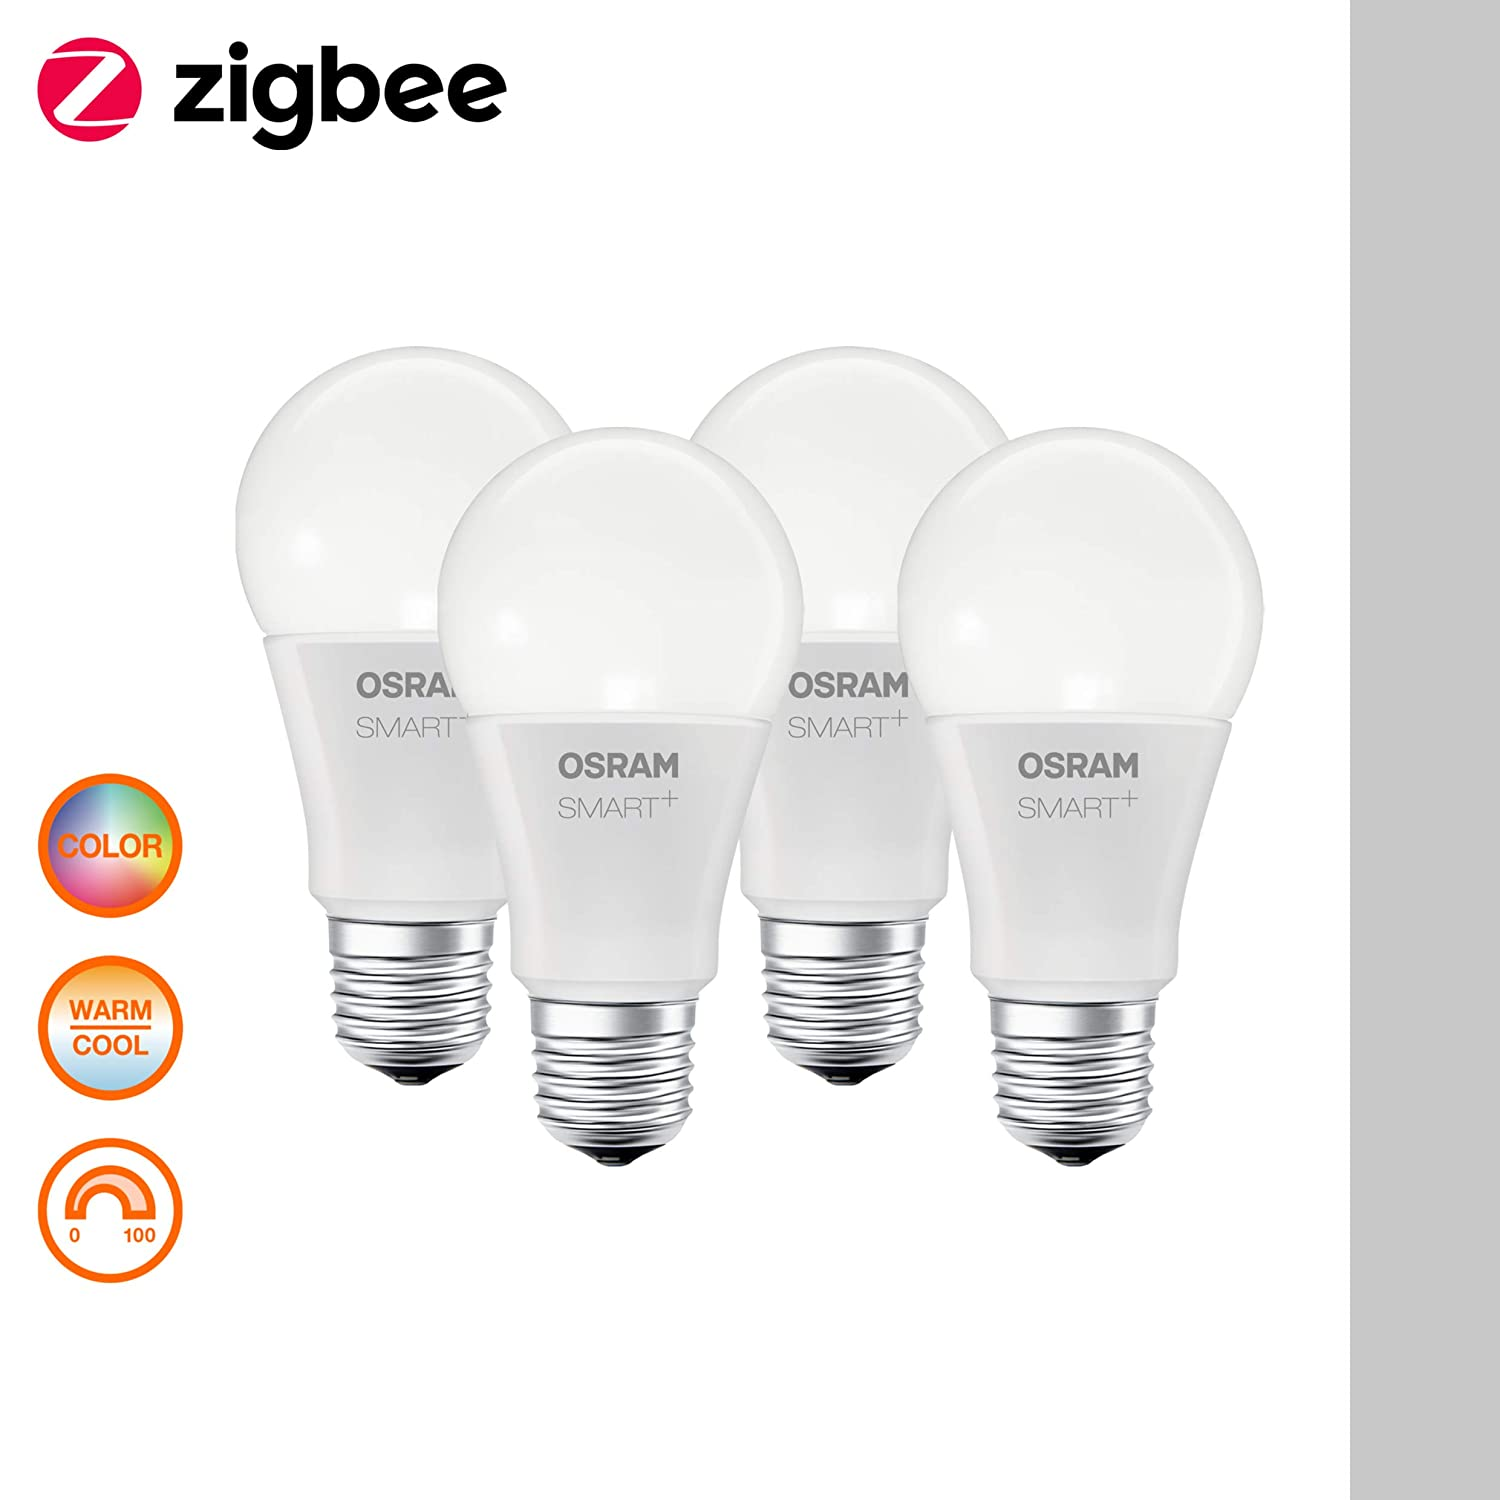 ZigBee Lamp with E14 Socket 2000K - 6500K 2. Gen. Compatible with Philips Hue Bridge dimmable Directly compatible with Echo Plus and Echo Show warm white to daylight OSRAM Smart+ LED